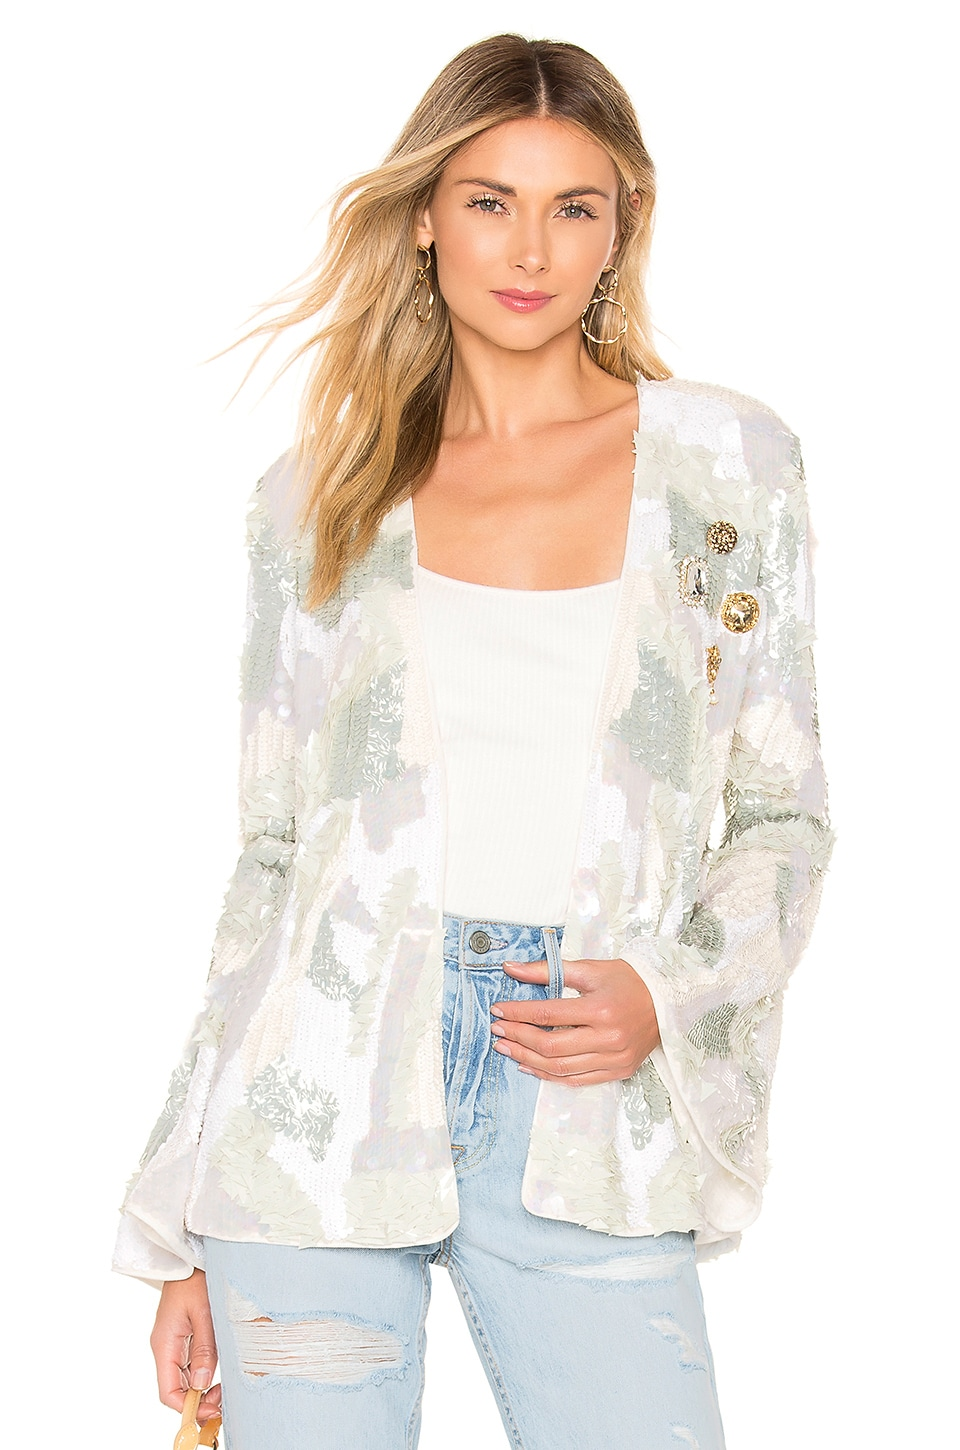 House of Harlow 1960 x REVOLVE Jolie Embellished Jacket in Ivory